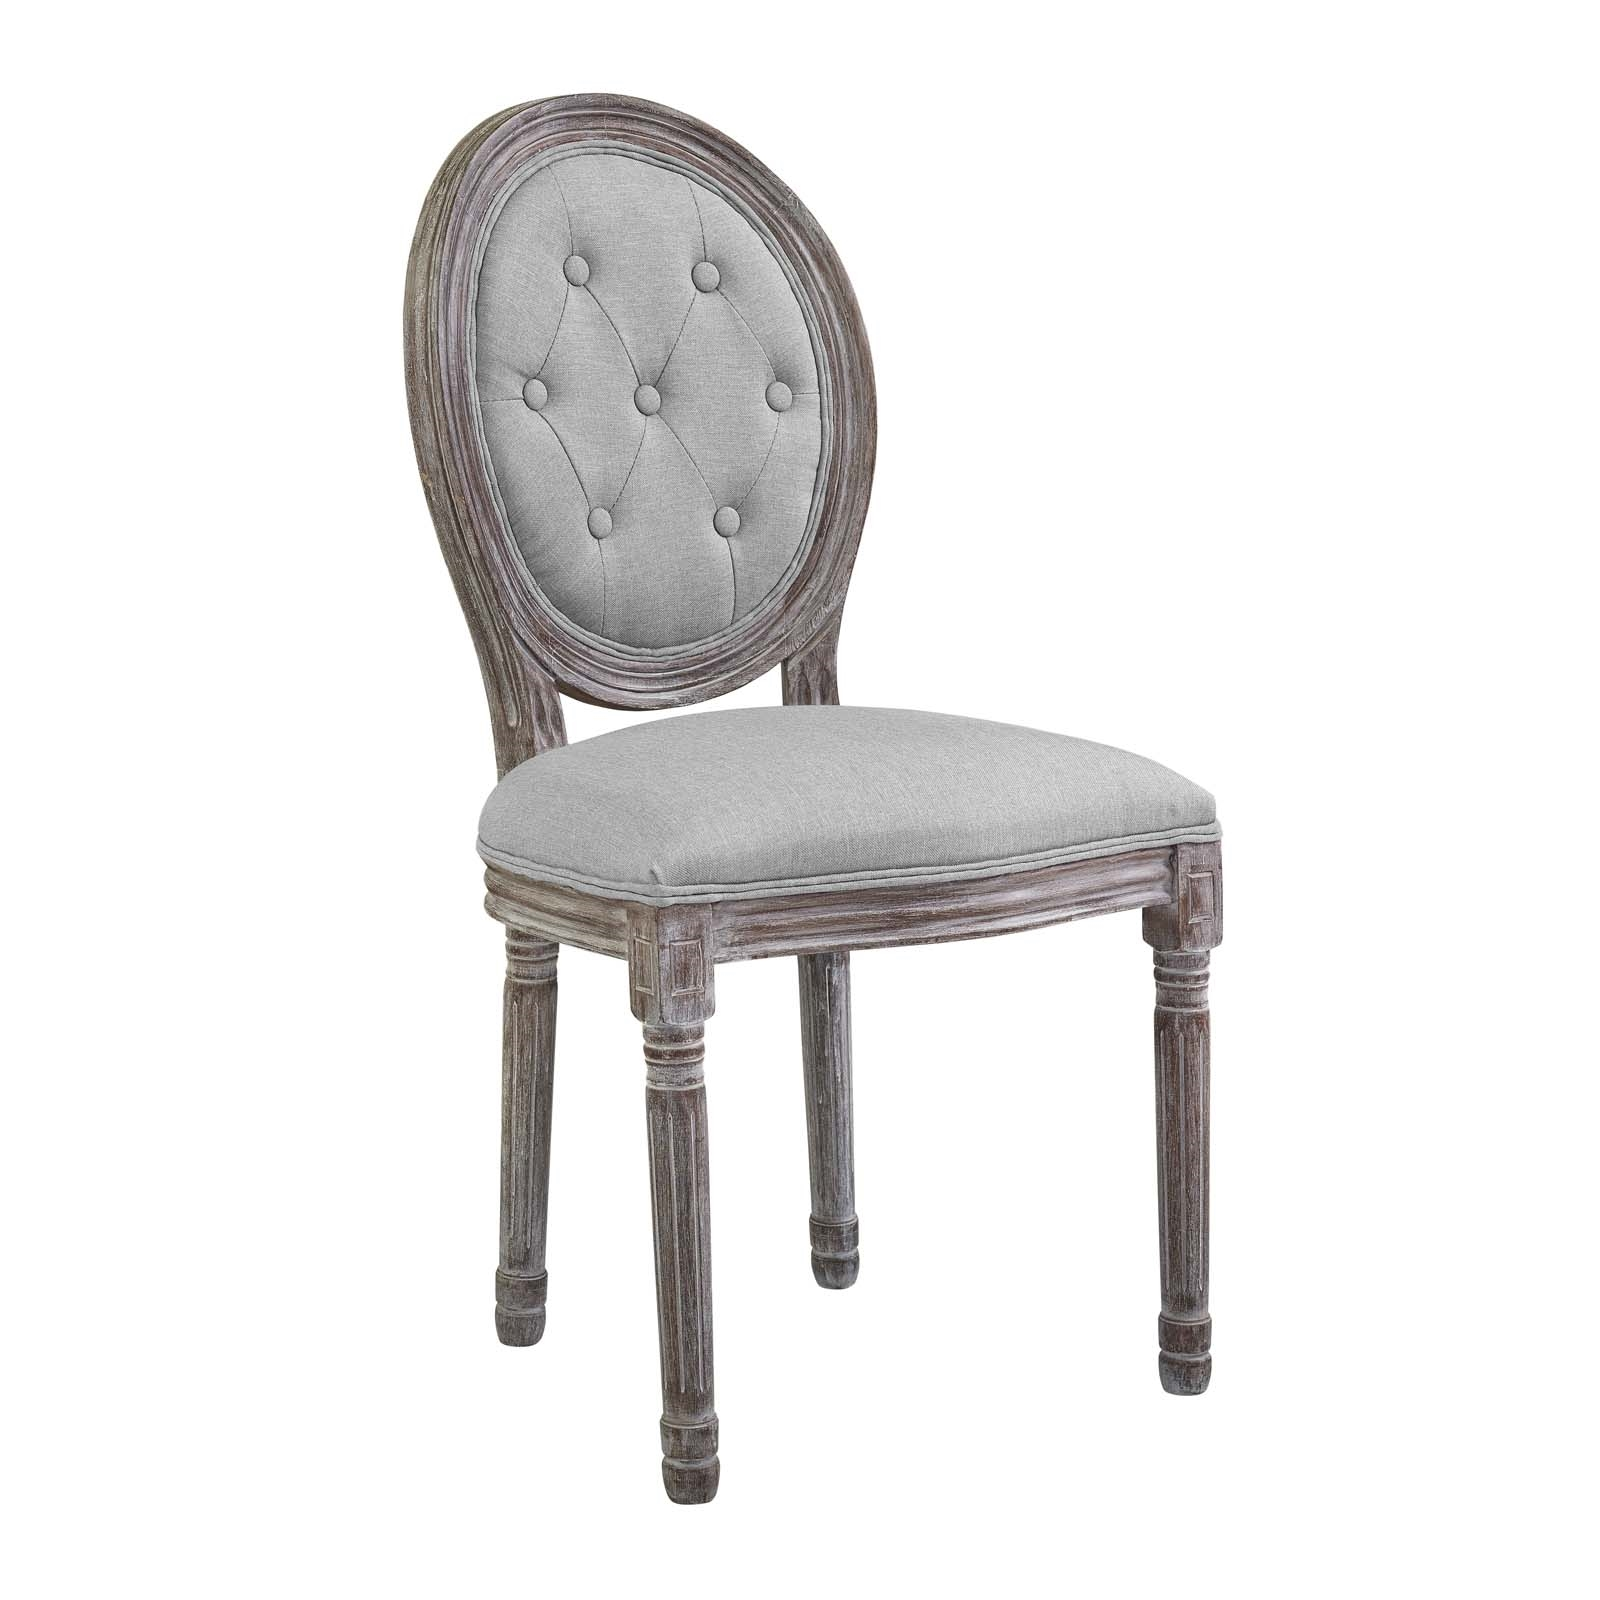 Arise Vintage French Upholstered Fabric Dining Side Chair in Light Gray